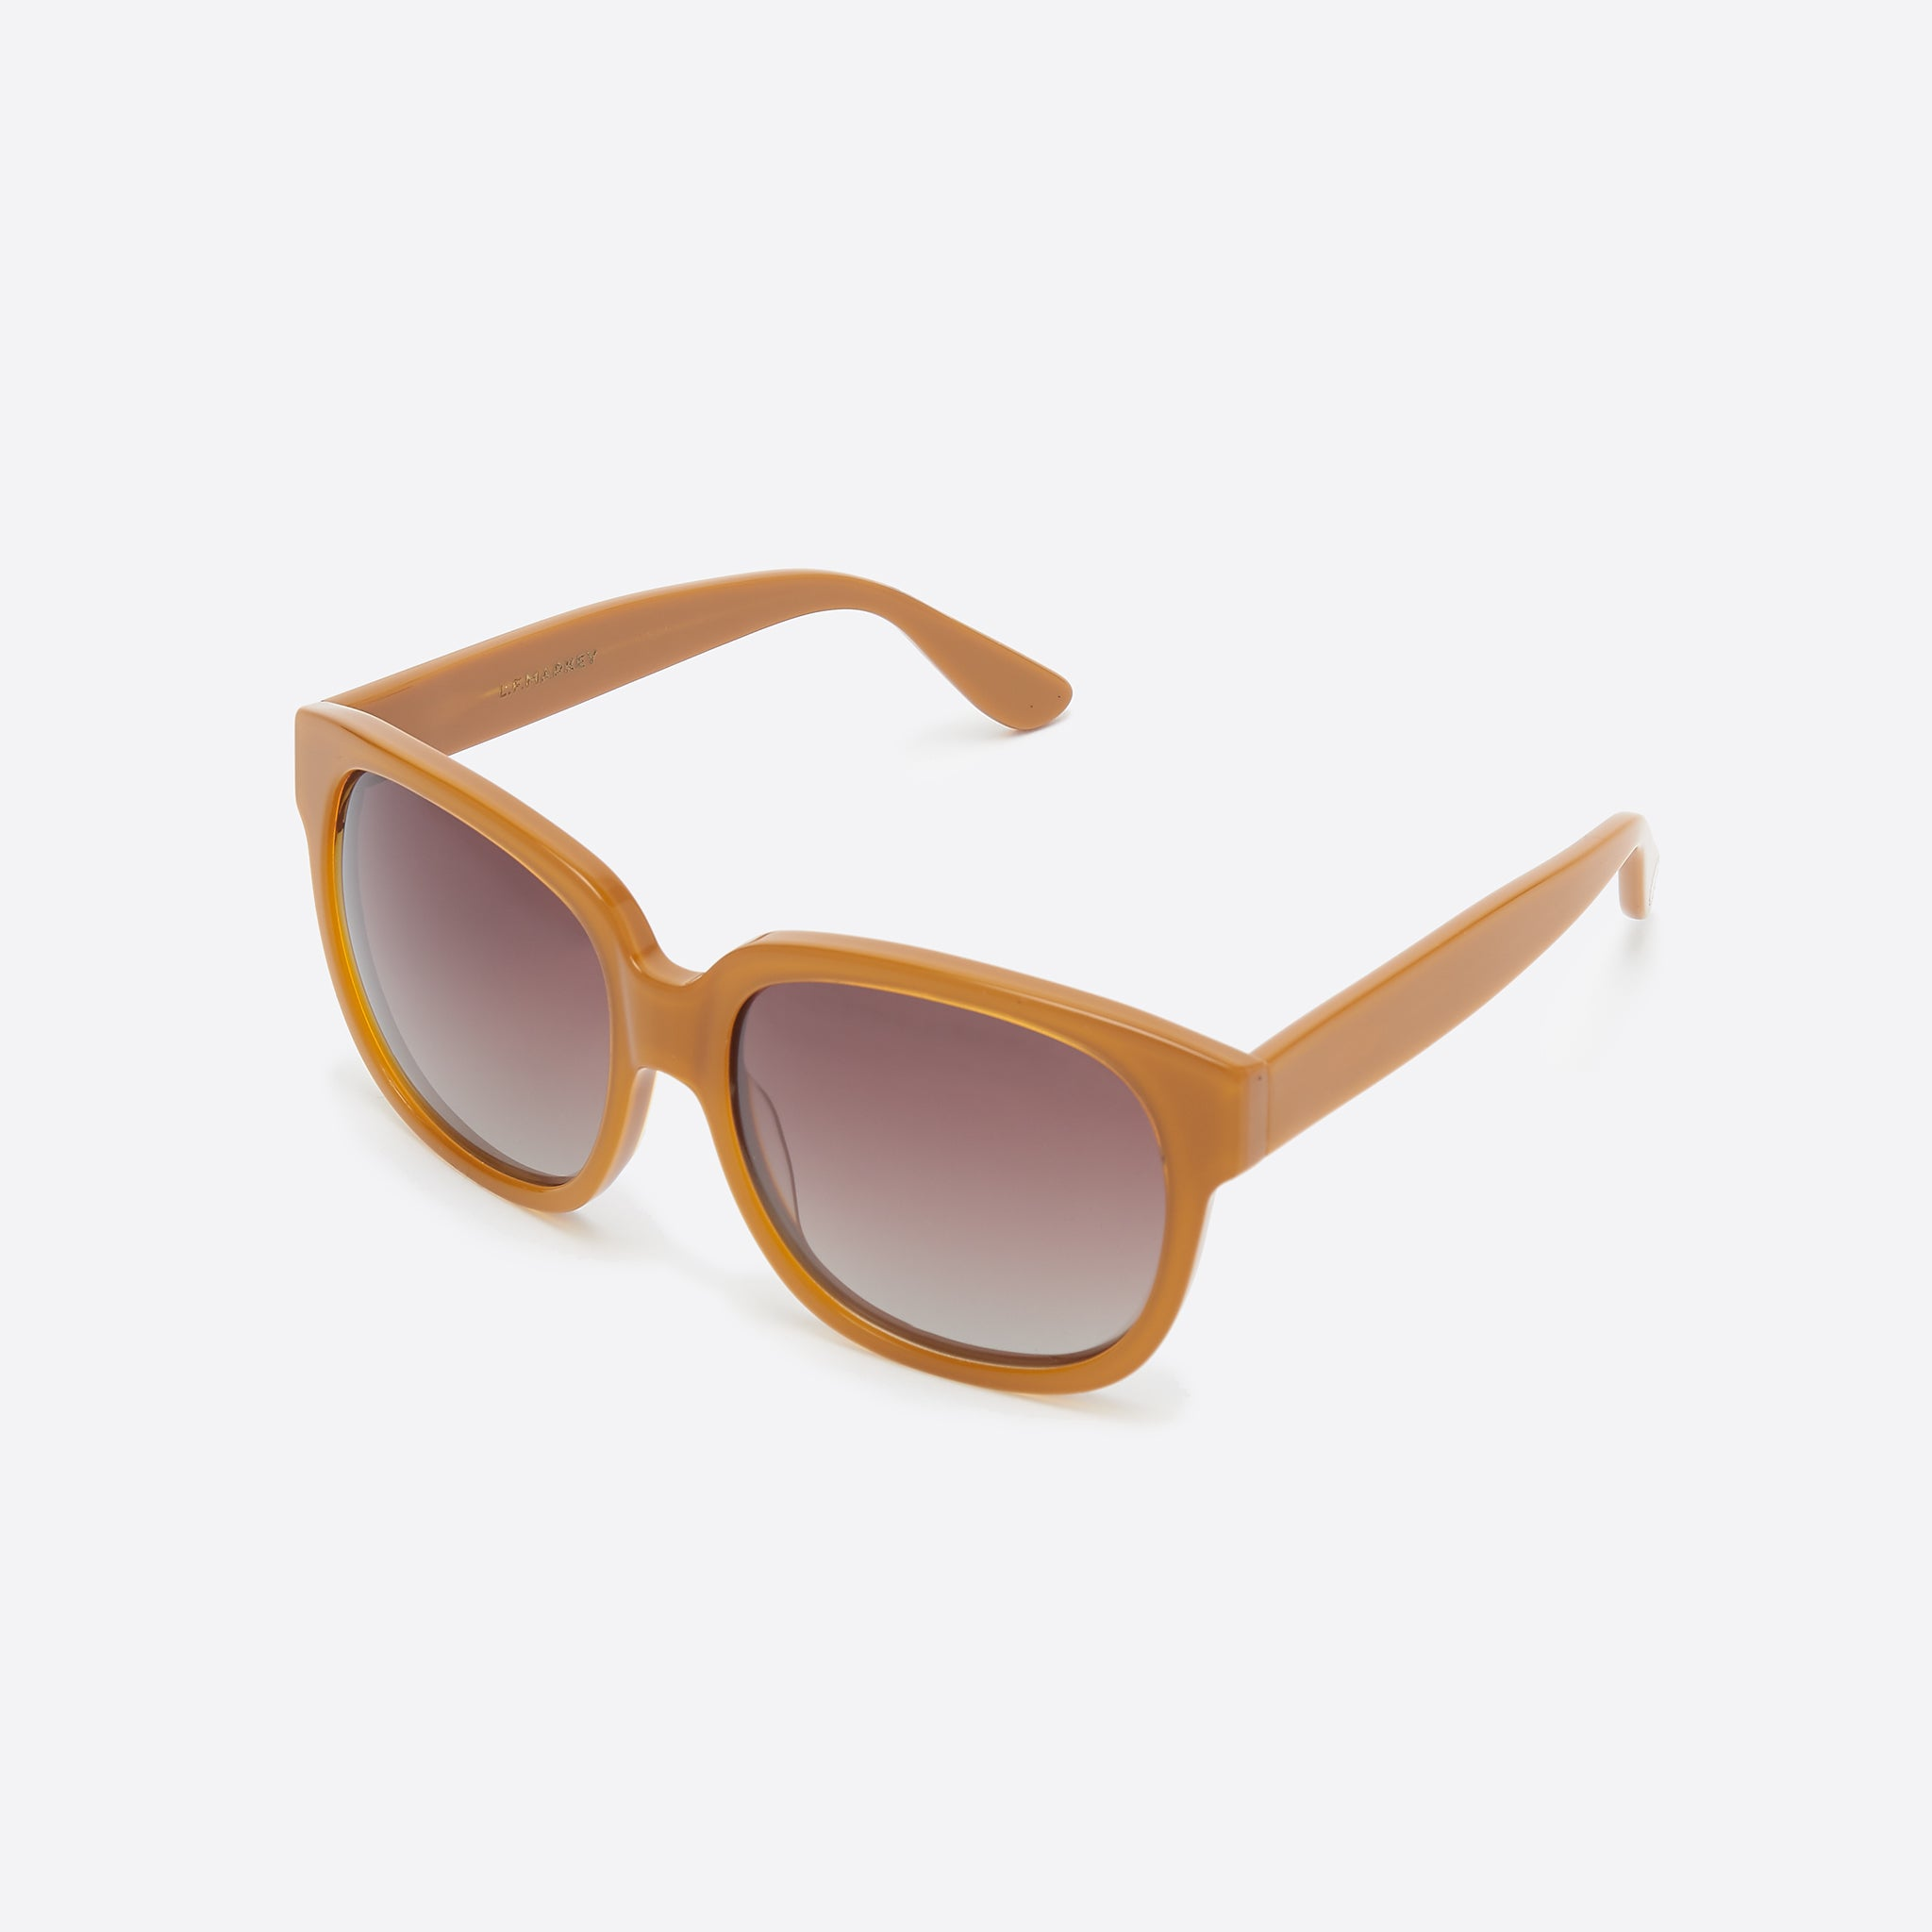 LF Markey Baby Sunglasses in Chestnut